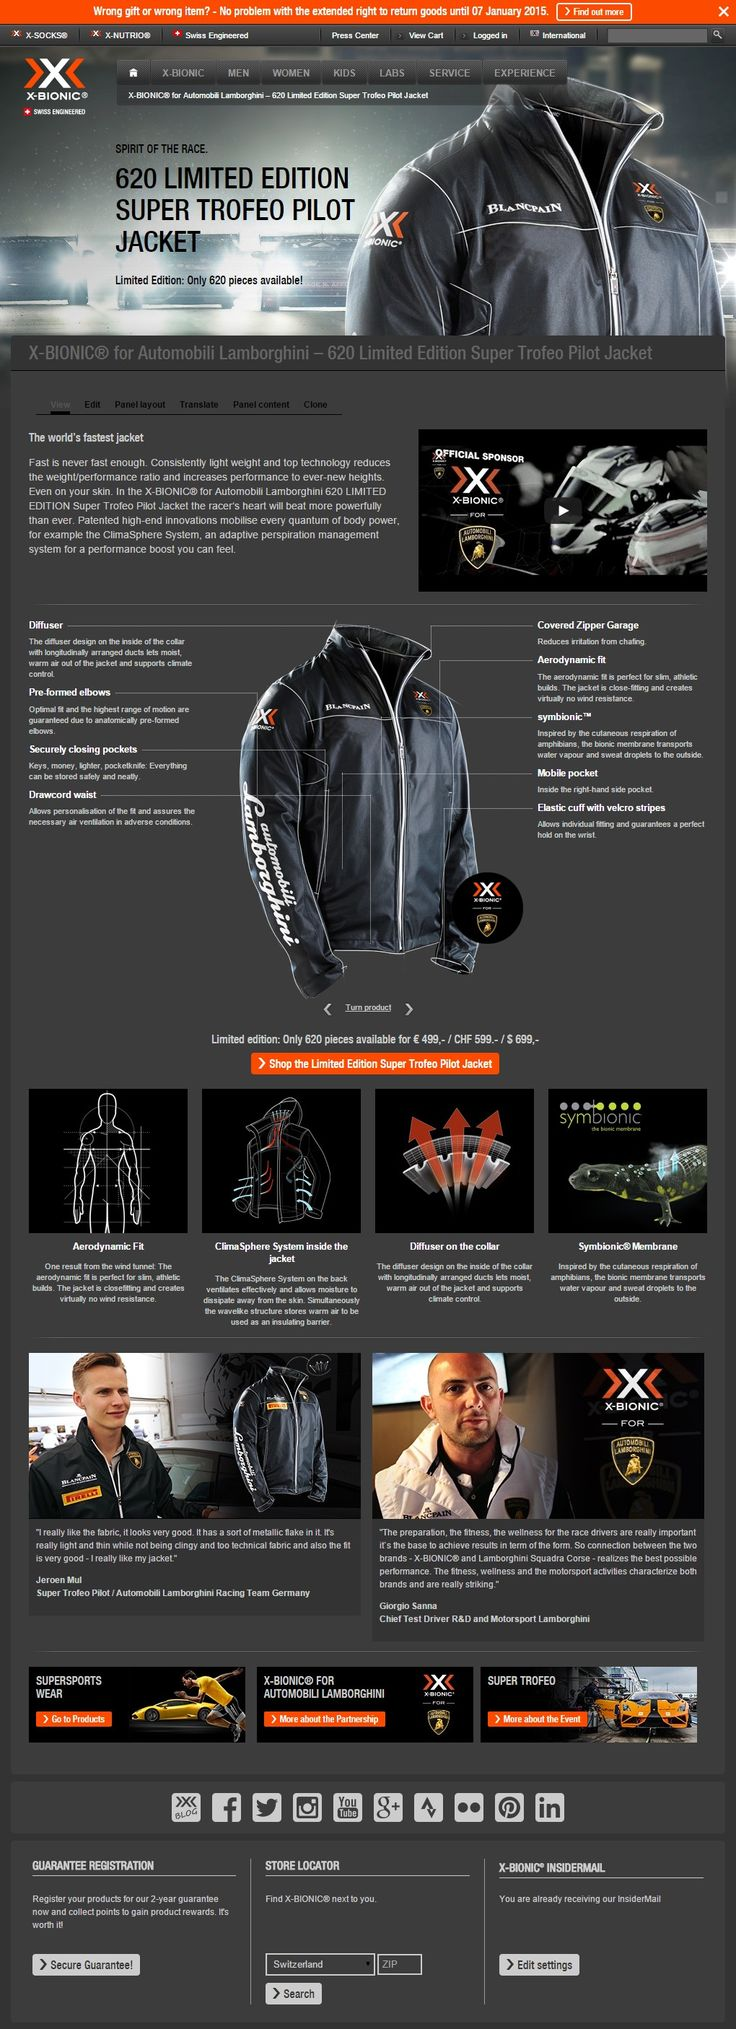 Be fast: Get one of the X-BIONIC® for Automobili Lamborghini 620 LIMITED EDITION Super Trofeo Pilot Jackets - only 620 available! http://www.x-bionic.com/lamborghini-pilotjacket?utm_source=blog&utm_medium=Productteaser&utm_campaign=620-supertrofeo  #xbionic #supersportswear #motorsport #supertrofeo #lamborghini